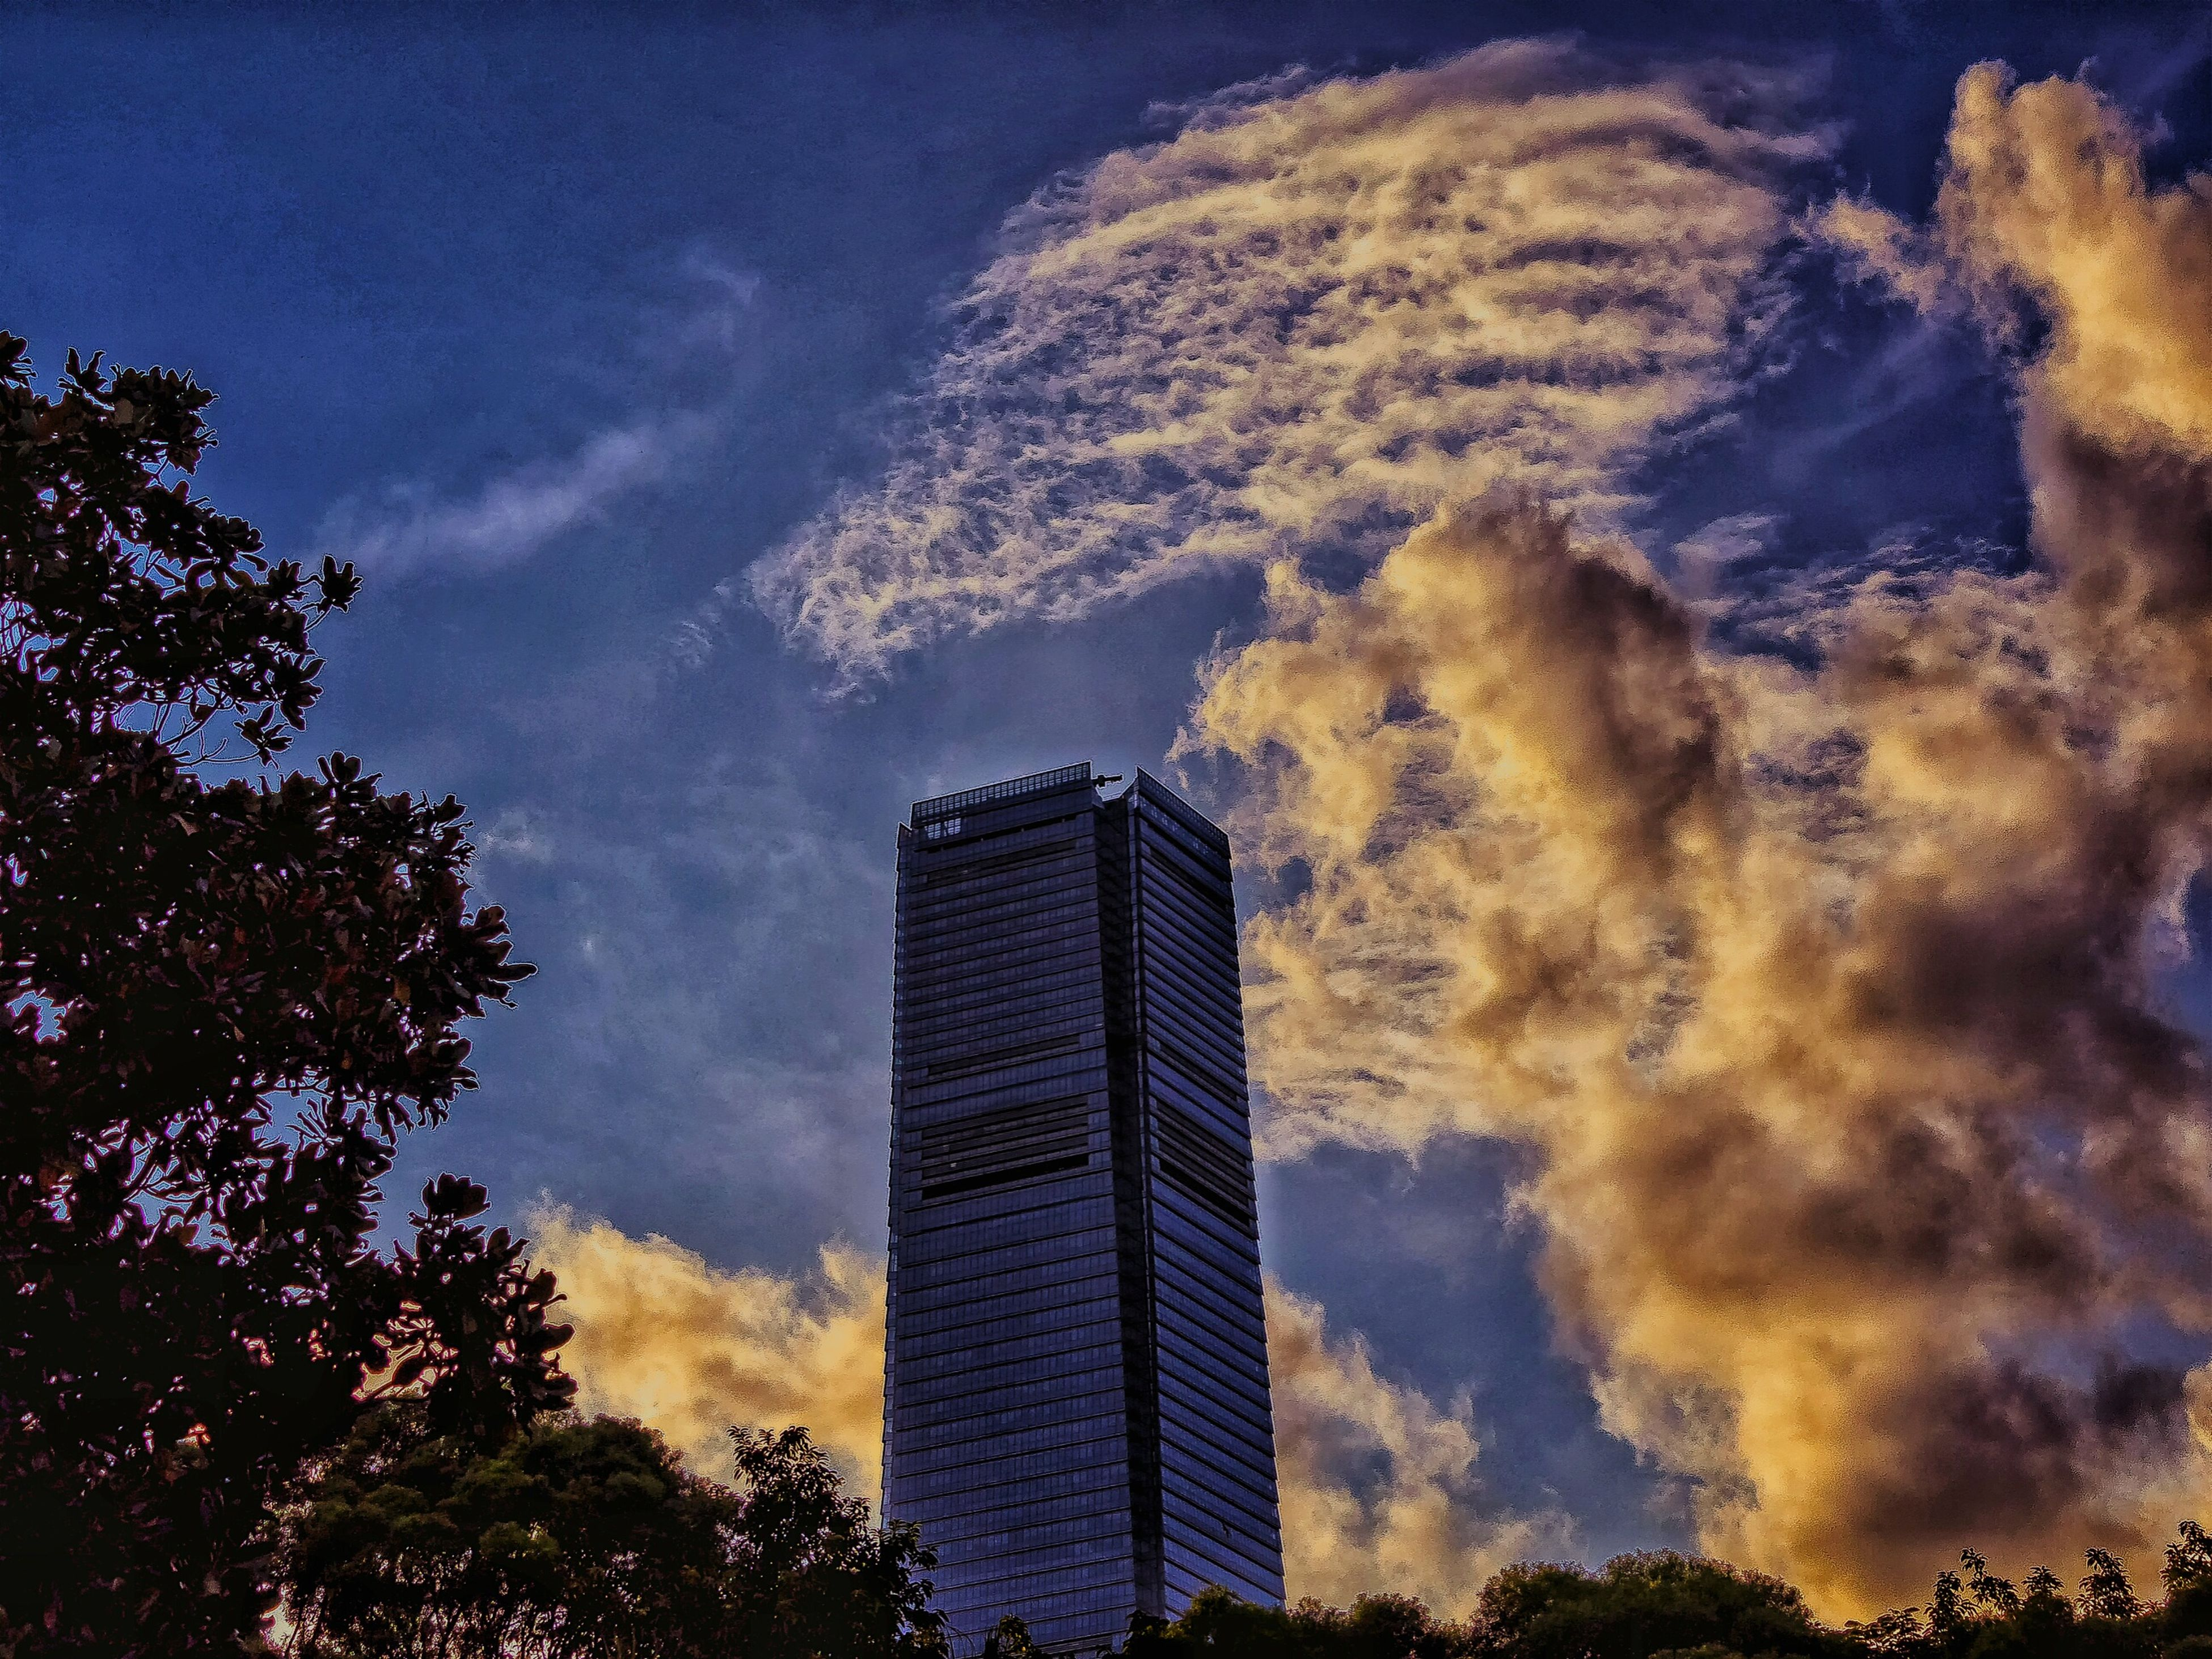 tree, sky, low angle view, architecture, building exterior, tall - high, skyscraper, built structure, city, silhouette, branch, tower, growth, cloud, cloud - sky, modern, office building, outdoors, tall, building story, city life, no people, scenics, beauty in nature, outline